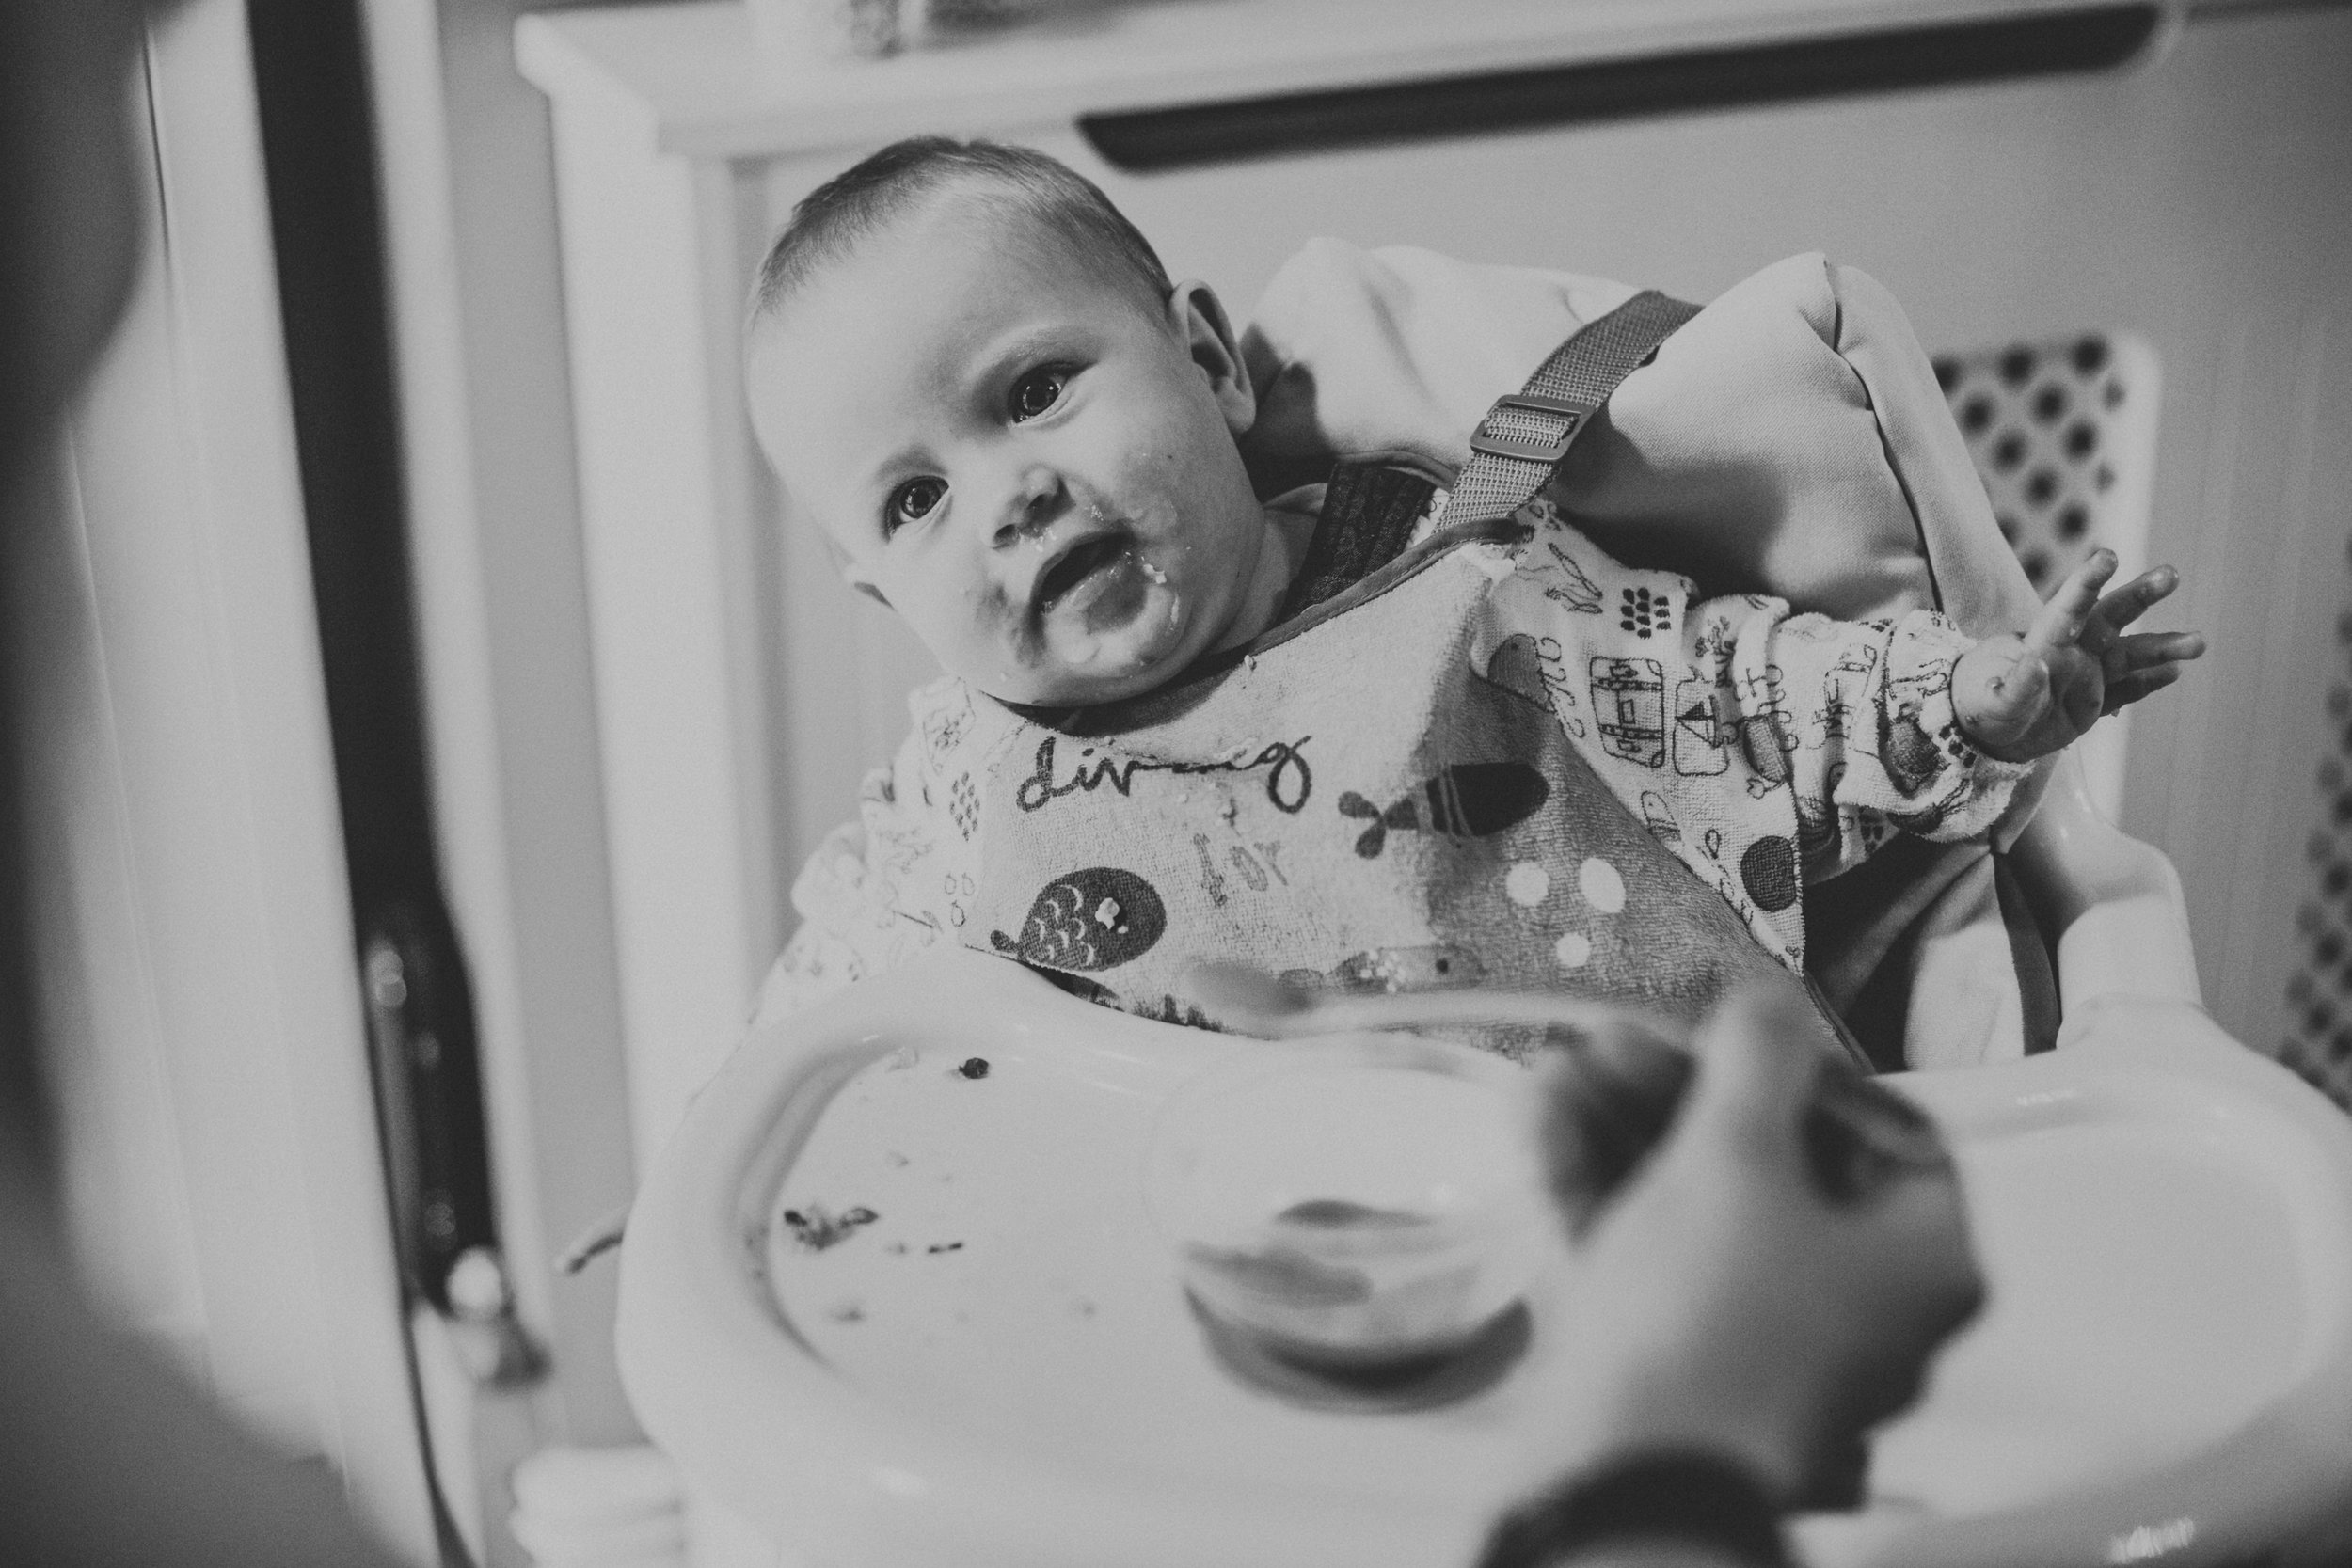 Black and white photo of baby eating.